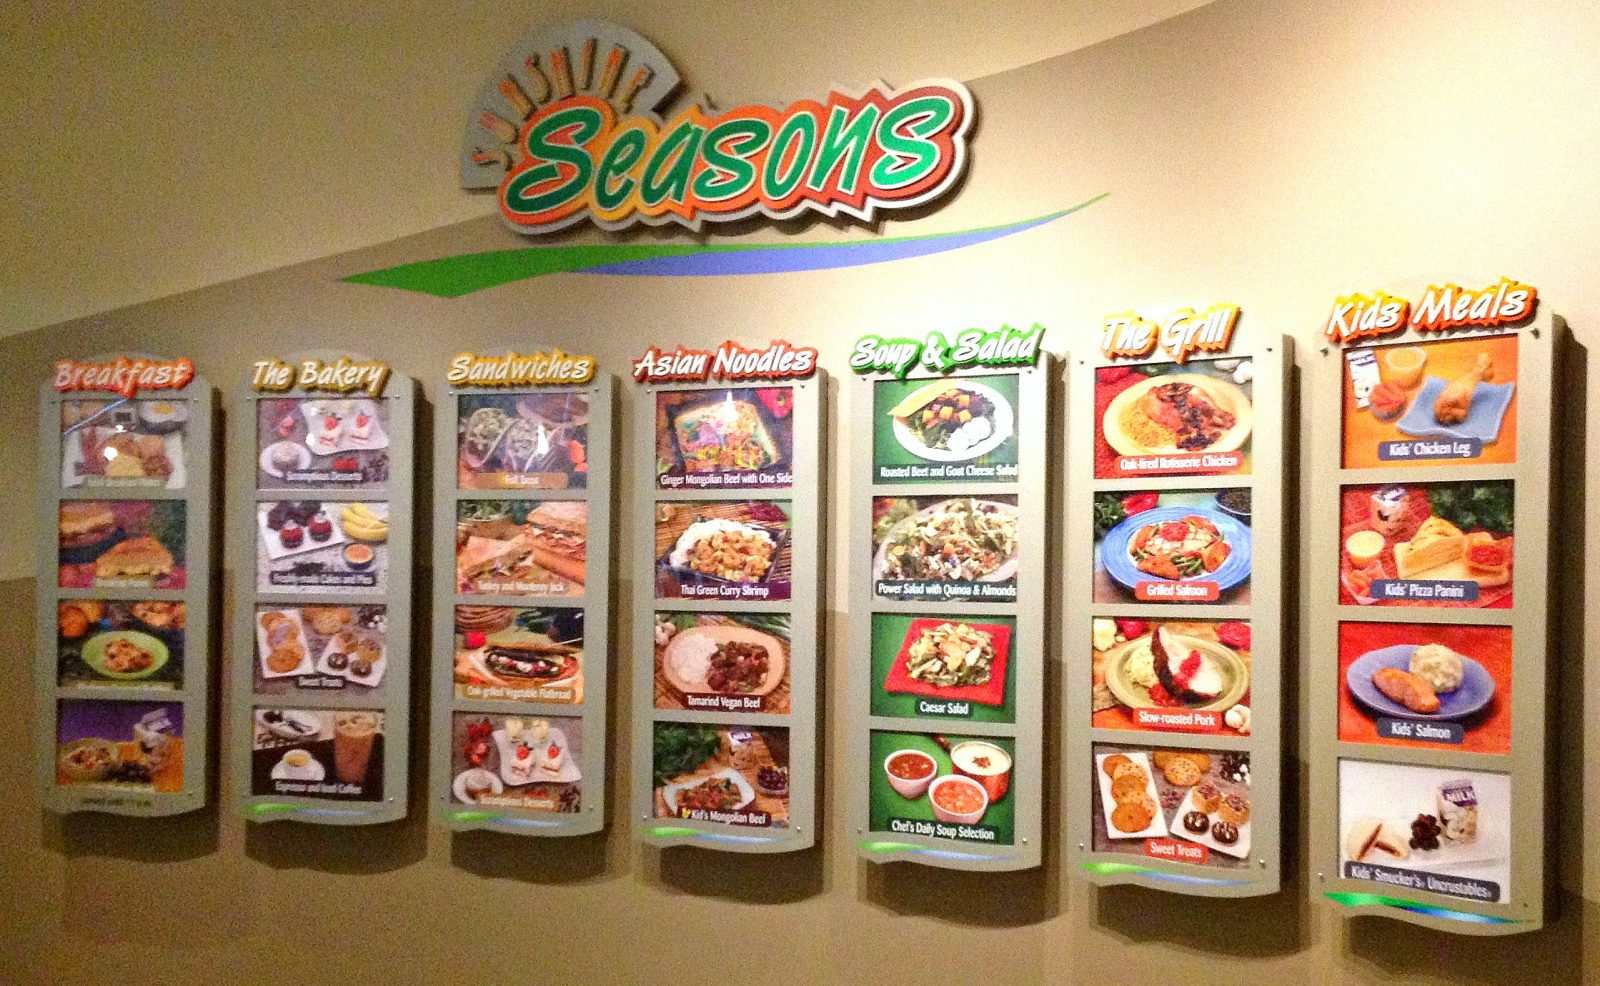 Seasons menu wall